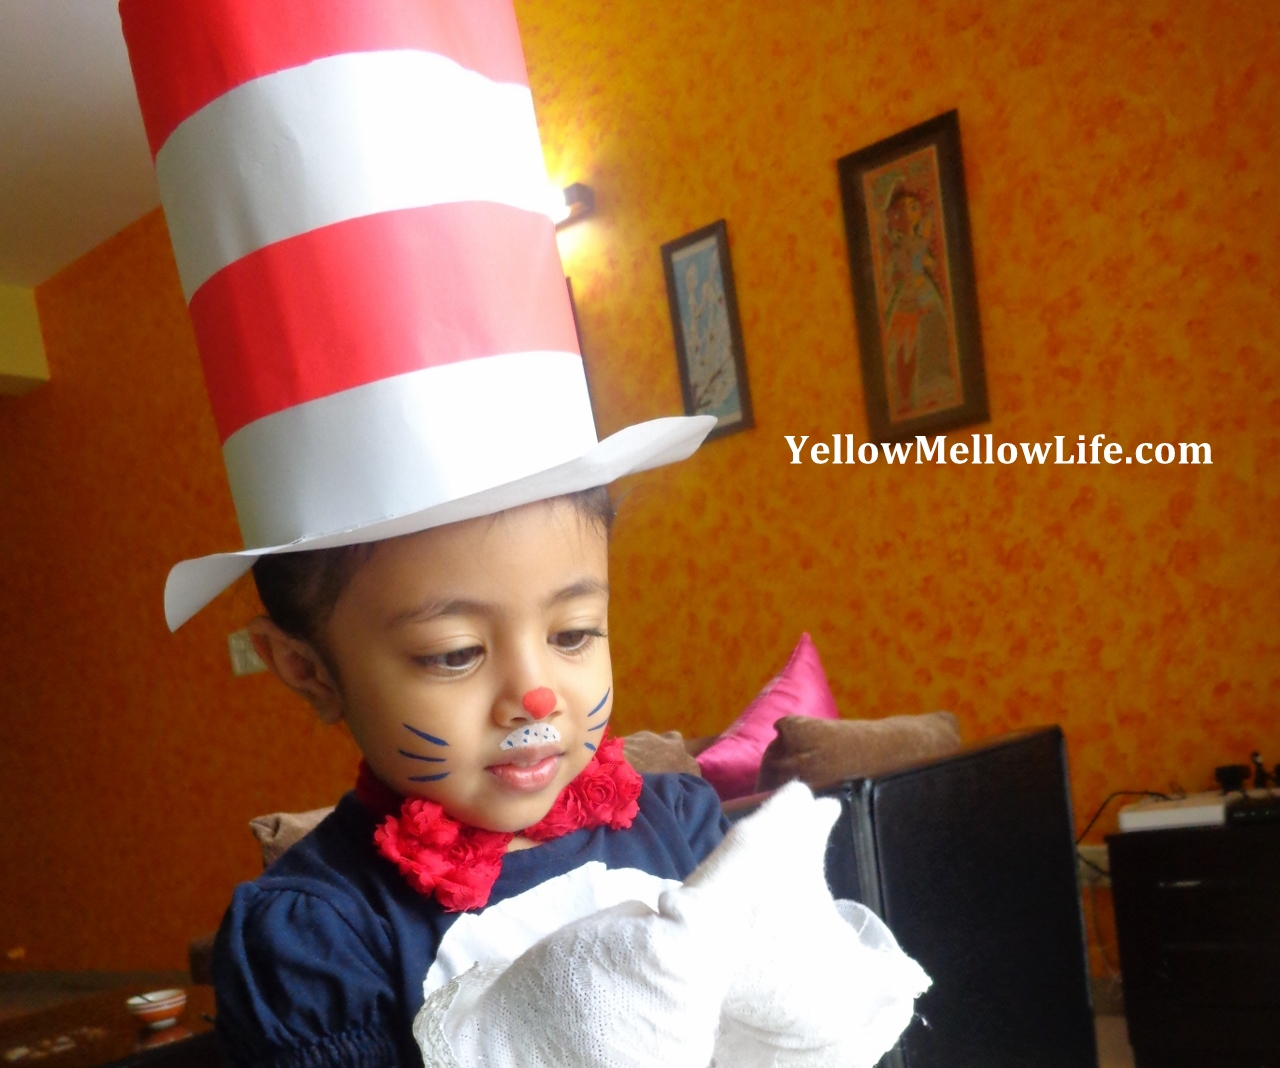 A Fancy 'The Cat in the Hat' Costume From Not So Fancy Material